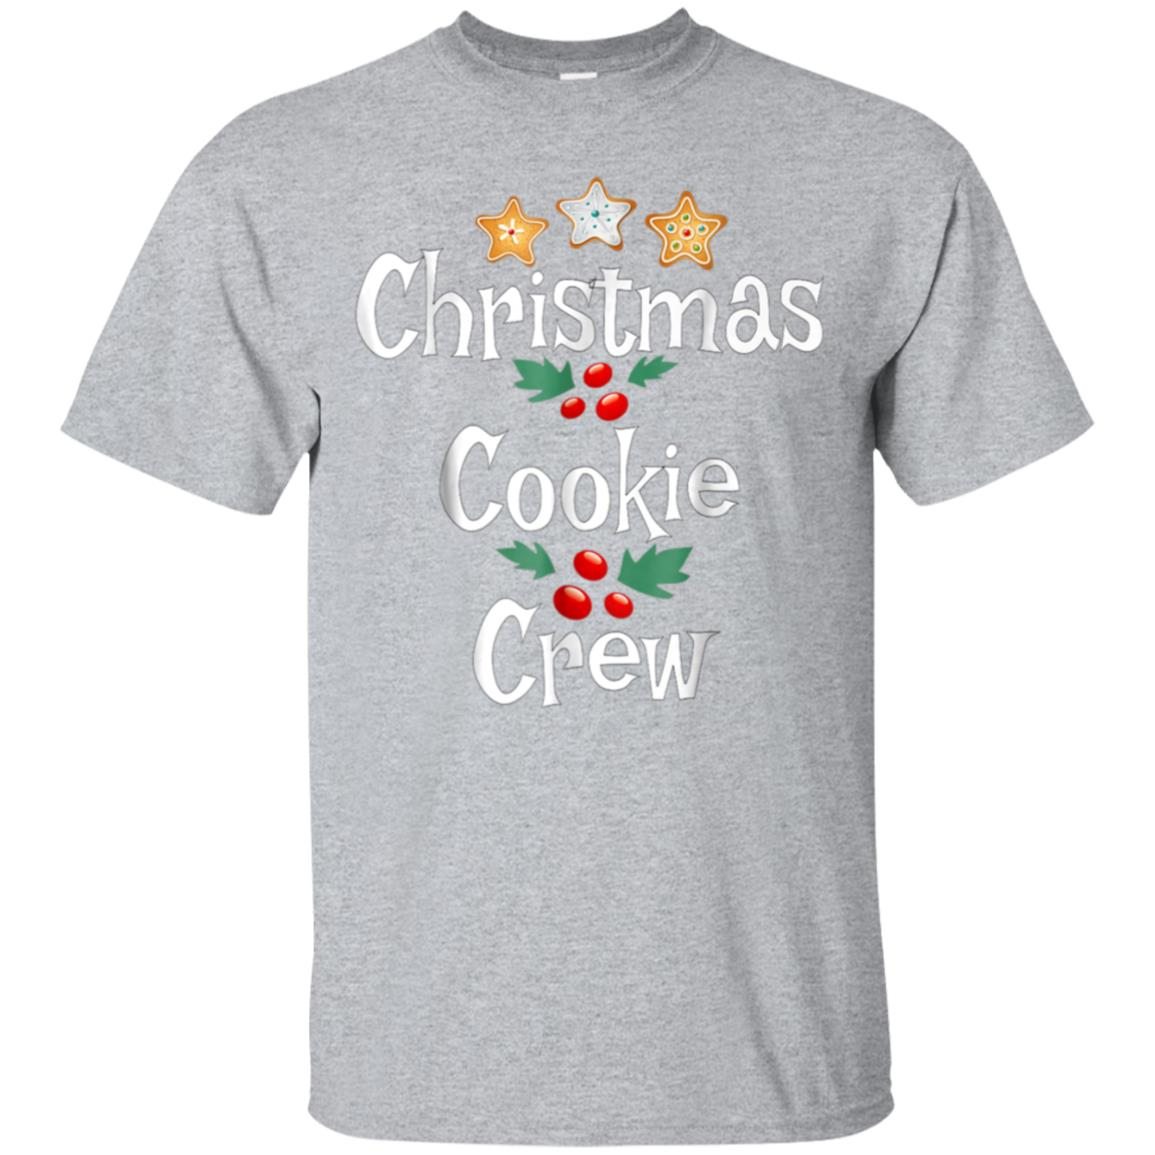 Christmas Baking Team Shirt Cookie Crew Bakers Gift Tee 99promocode